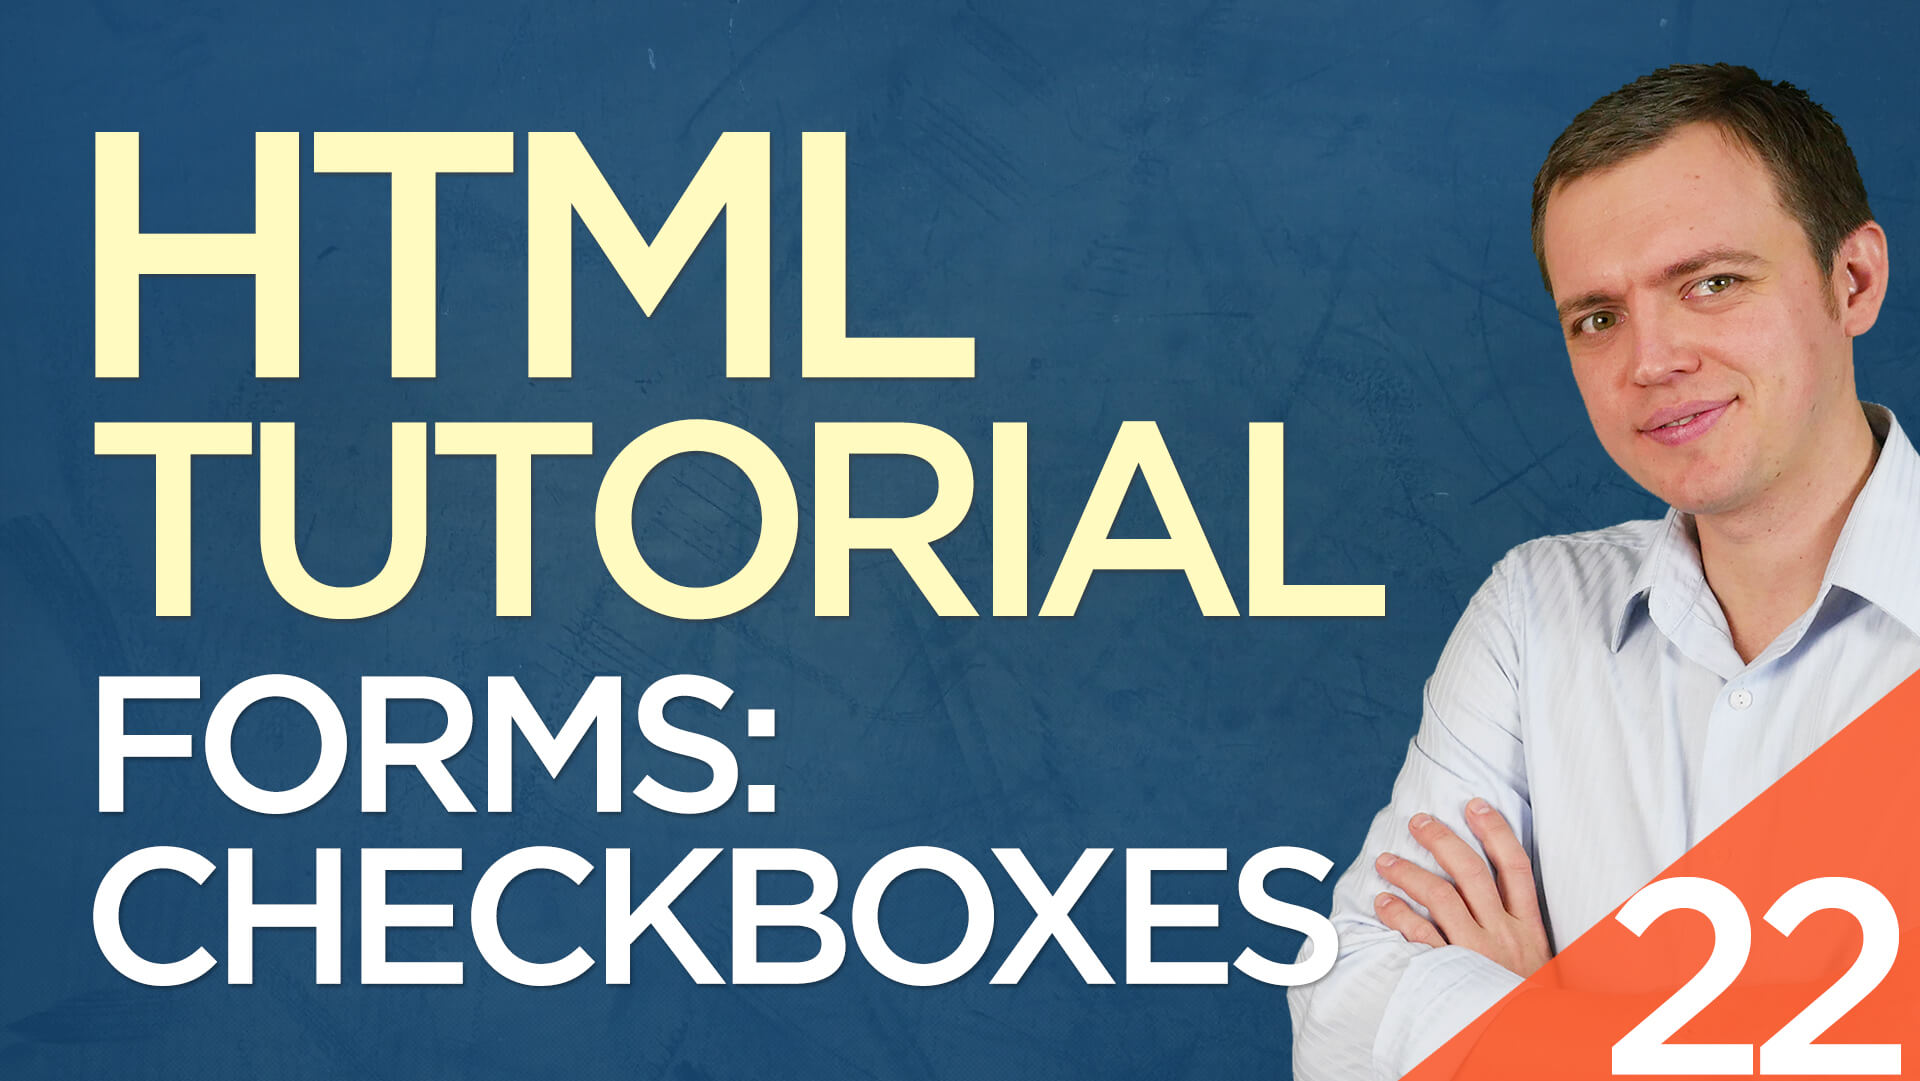 HTML Tutorial for Beginners: 22 Checkboxes Form Field